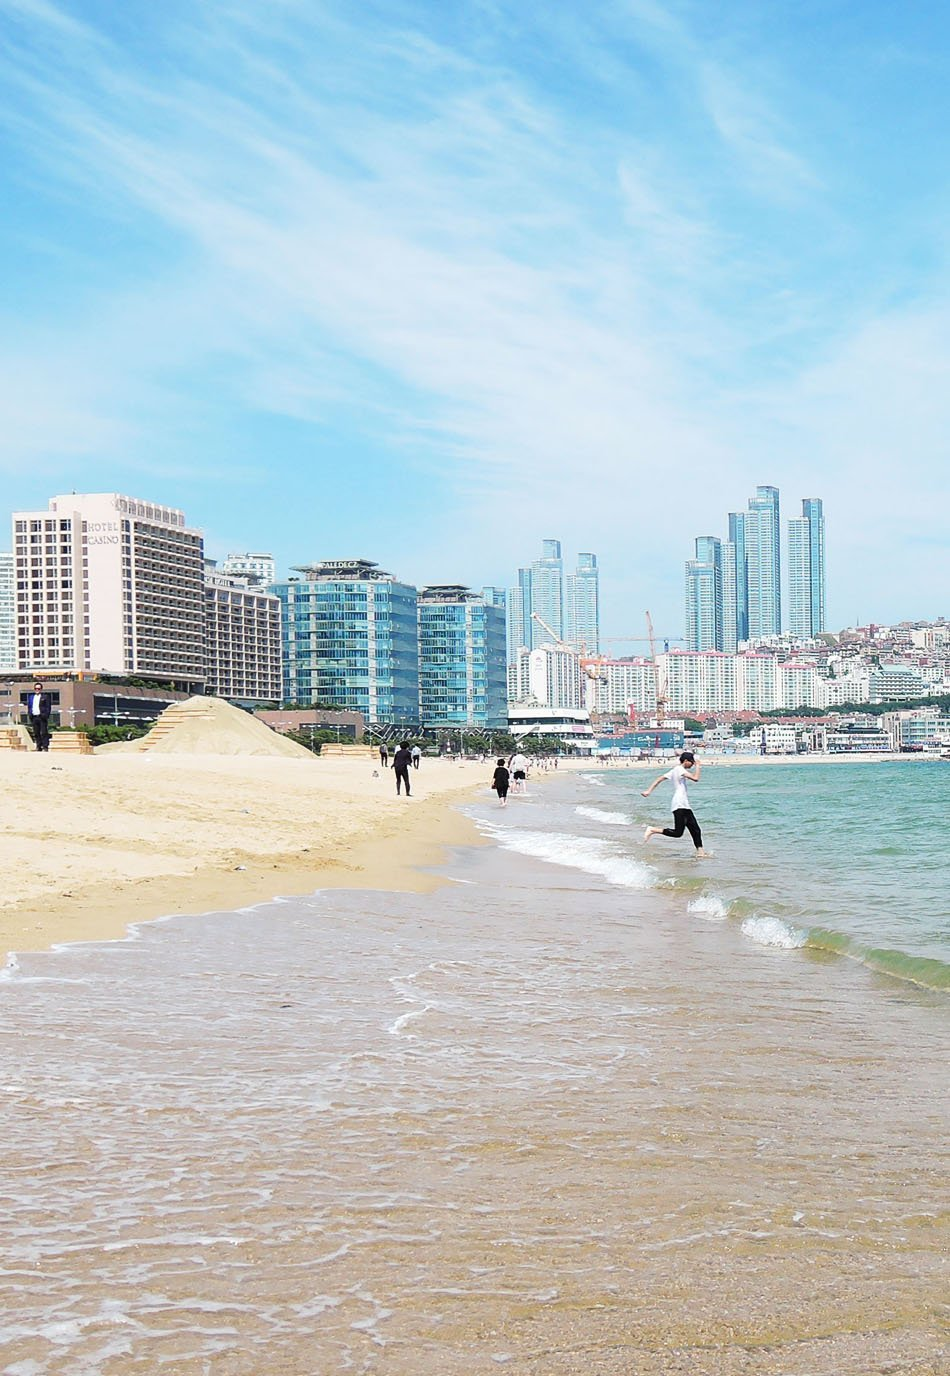 Visit Haeundae Beach, one of Busan's beautiful beaches. Spend an afternoon beach-bumming and people-watching and enjoy Haeundae's fine white sand. Click through for a detailed guide on how to visit Busan in 3 days.